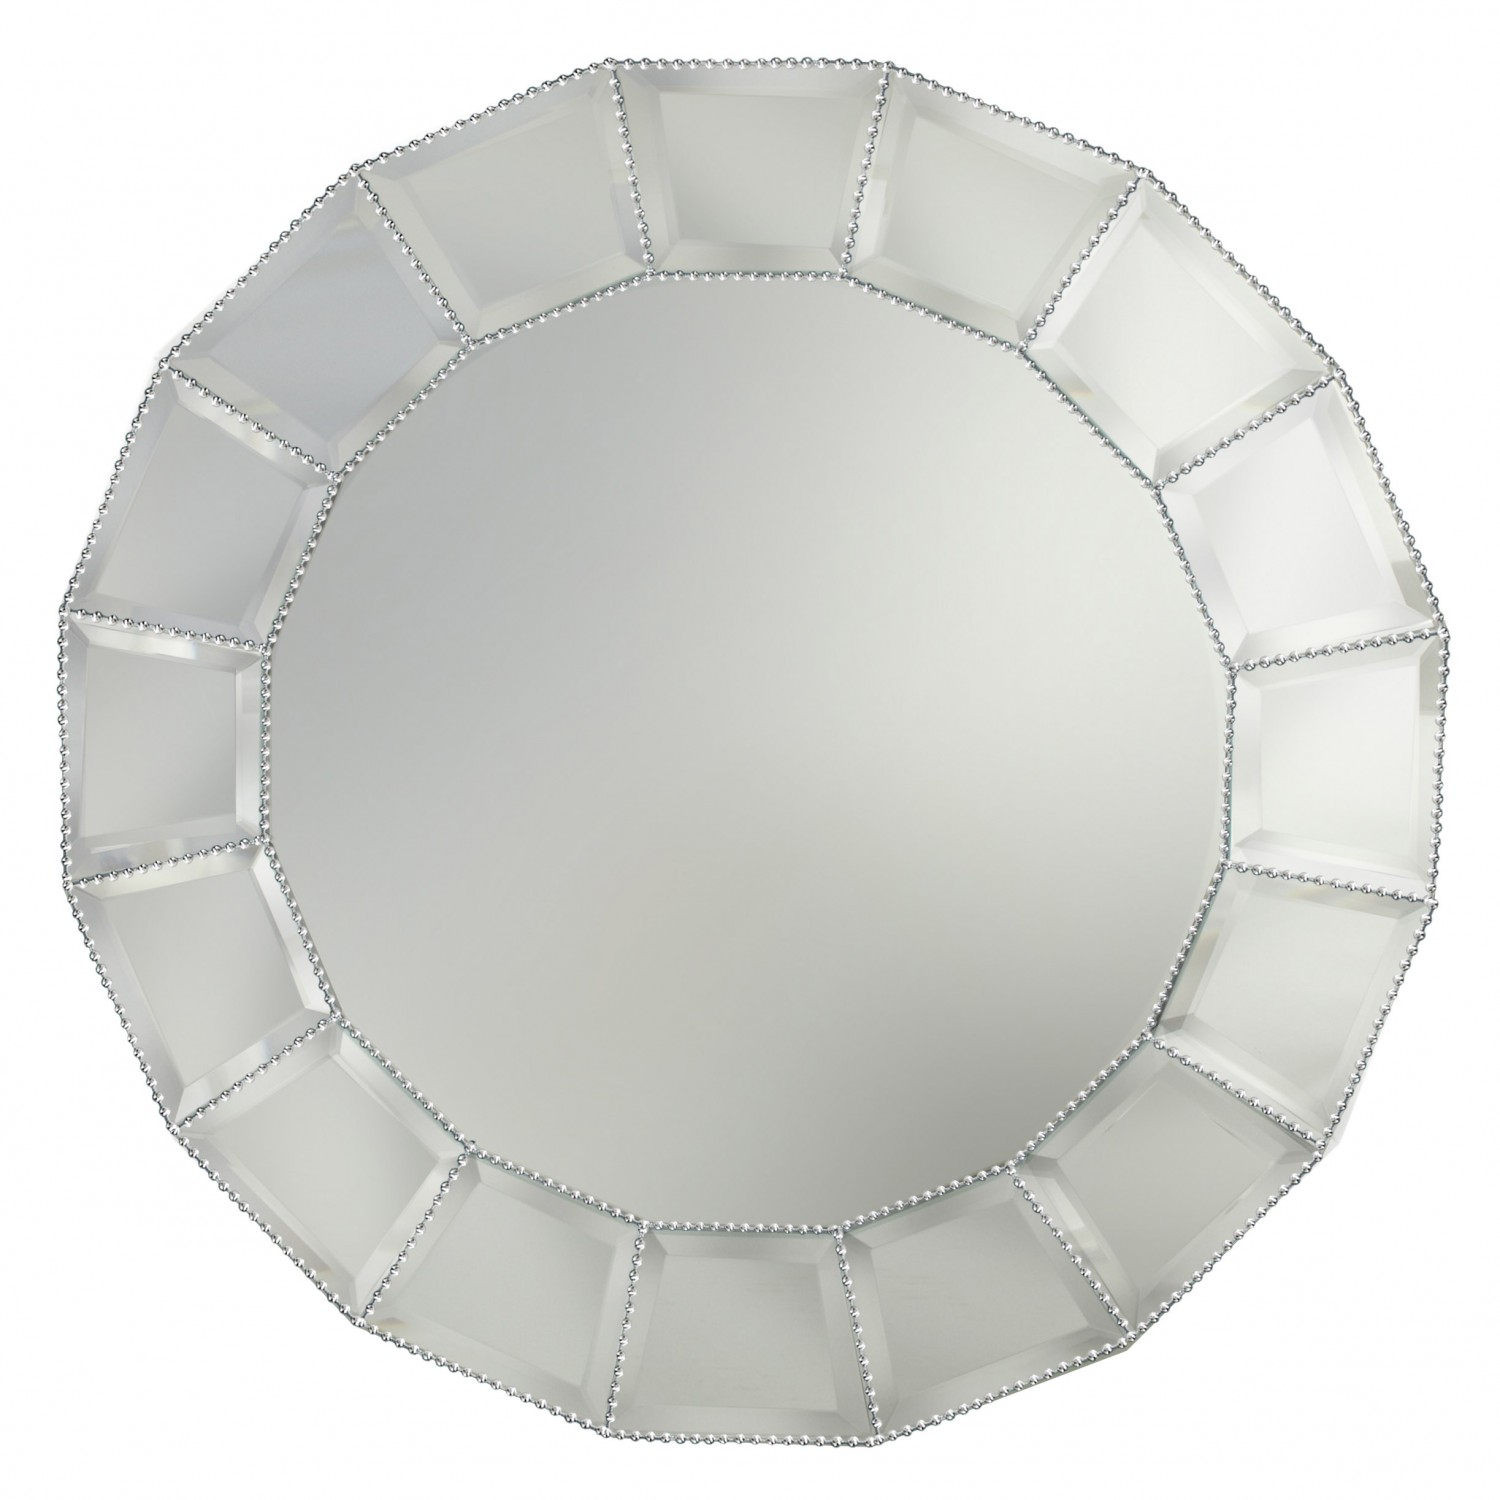 The Jay Companies 1331680 Round Beveled Block Beaded Glass Mirror Charger Plate 13""